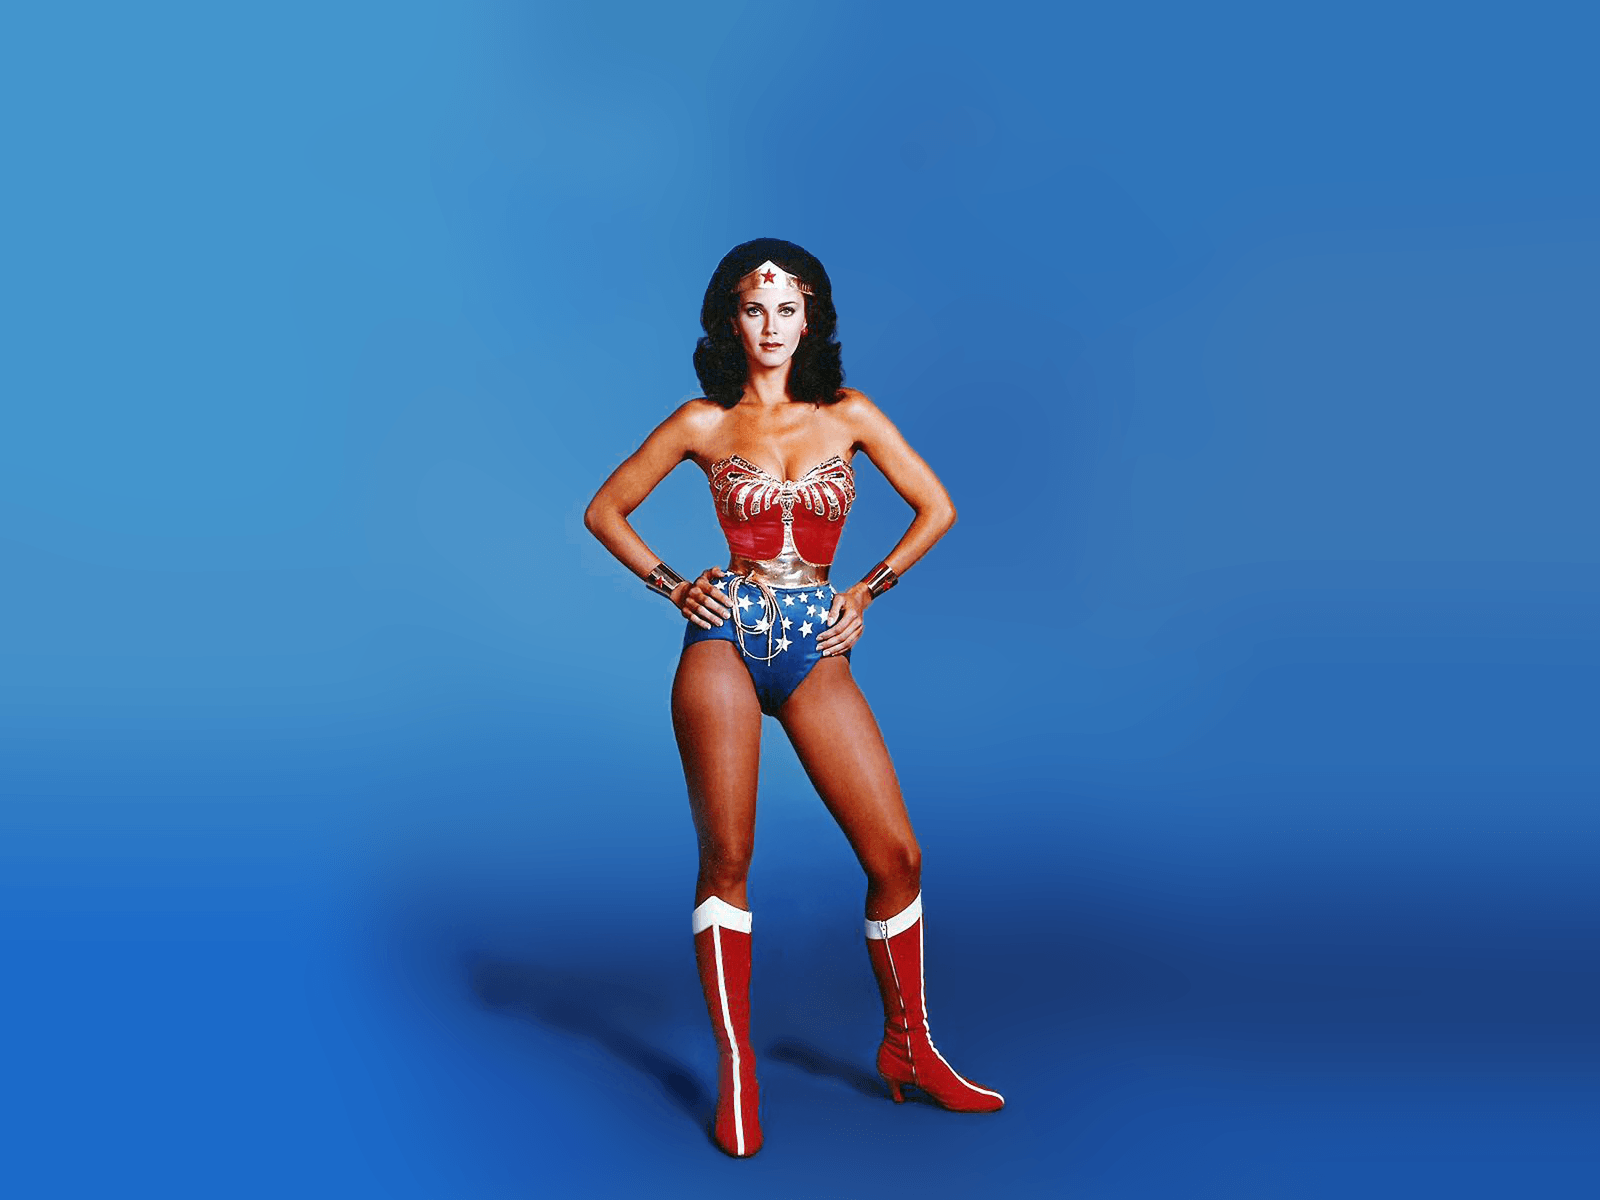 wonder woman wallpaper 4682 pictures wonderful - ismar.us